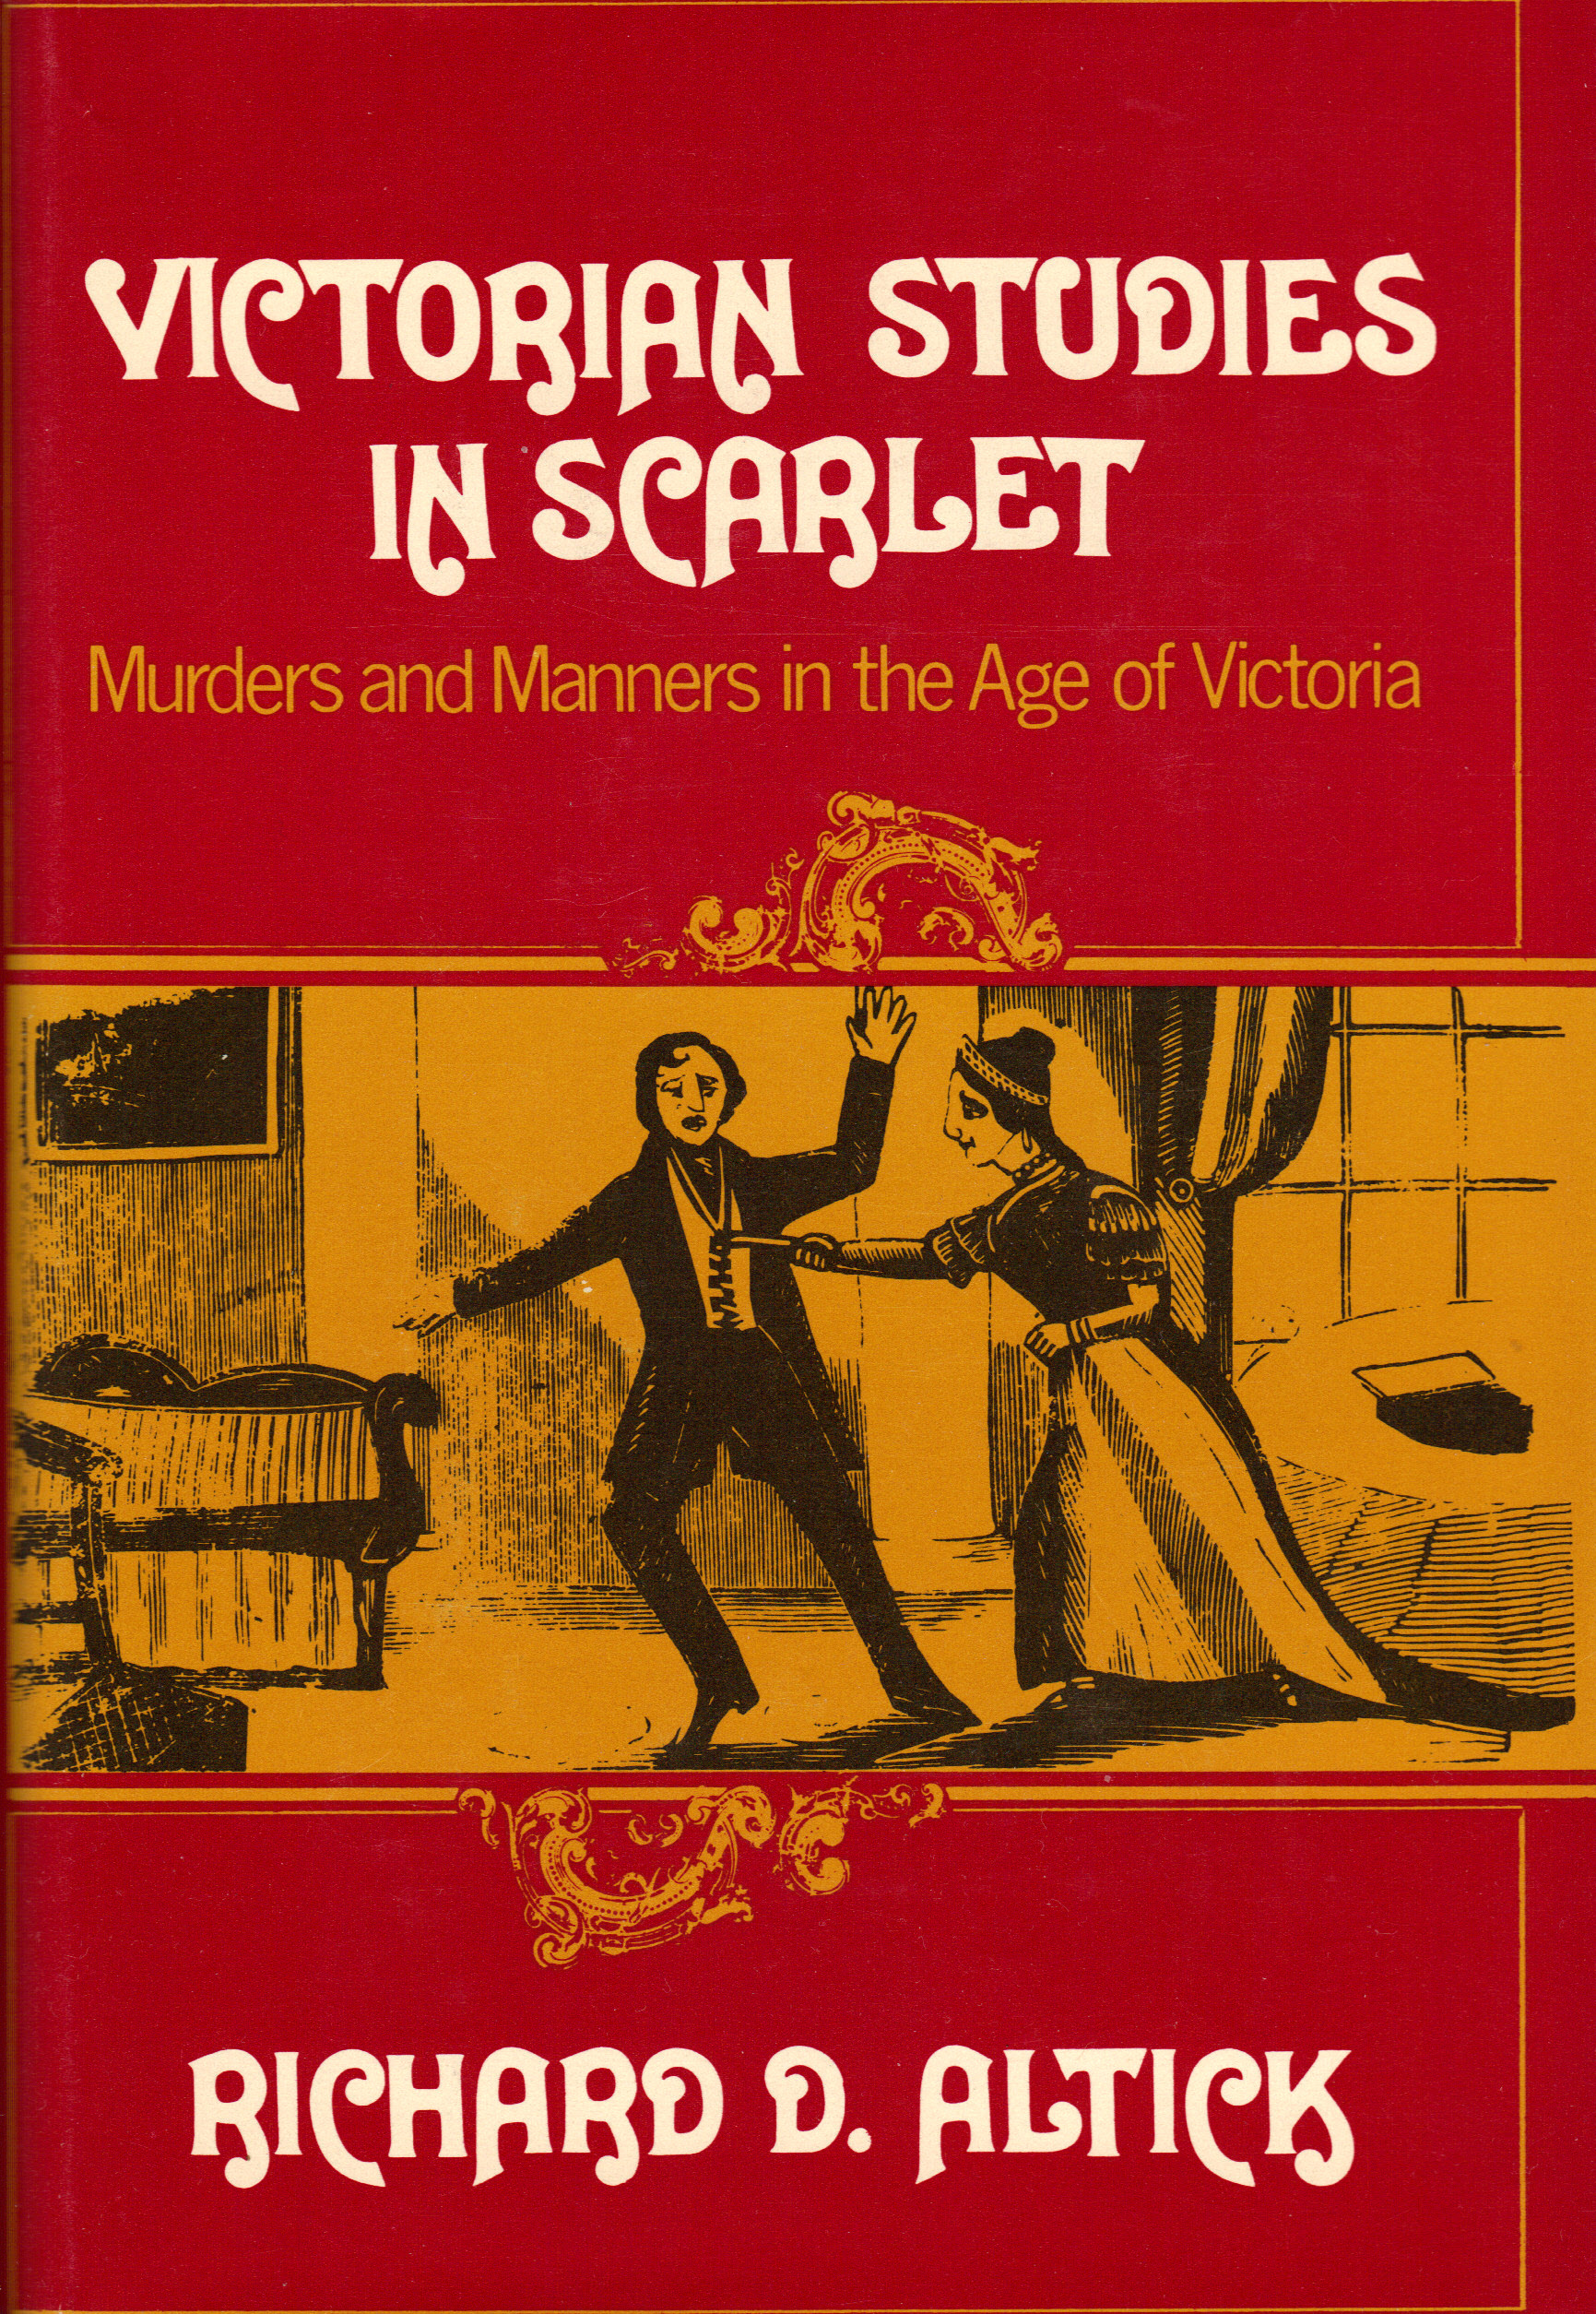 Image for VICTORIAN STUDIES IN SCARLET ~Murders and Manners in the Age of Victoria